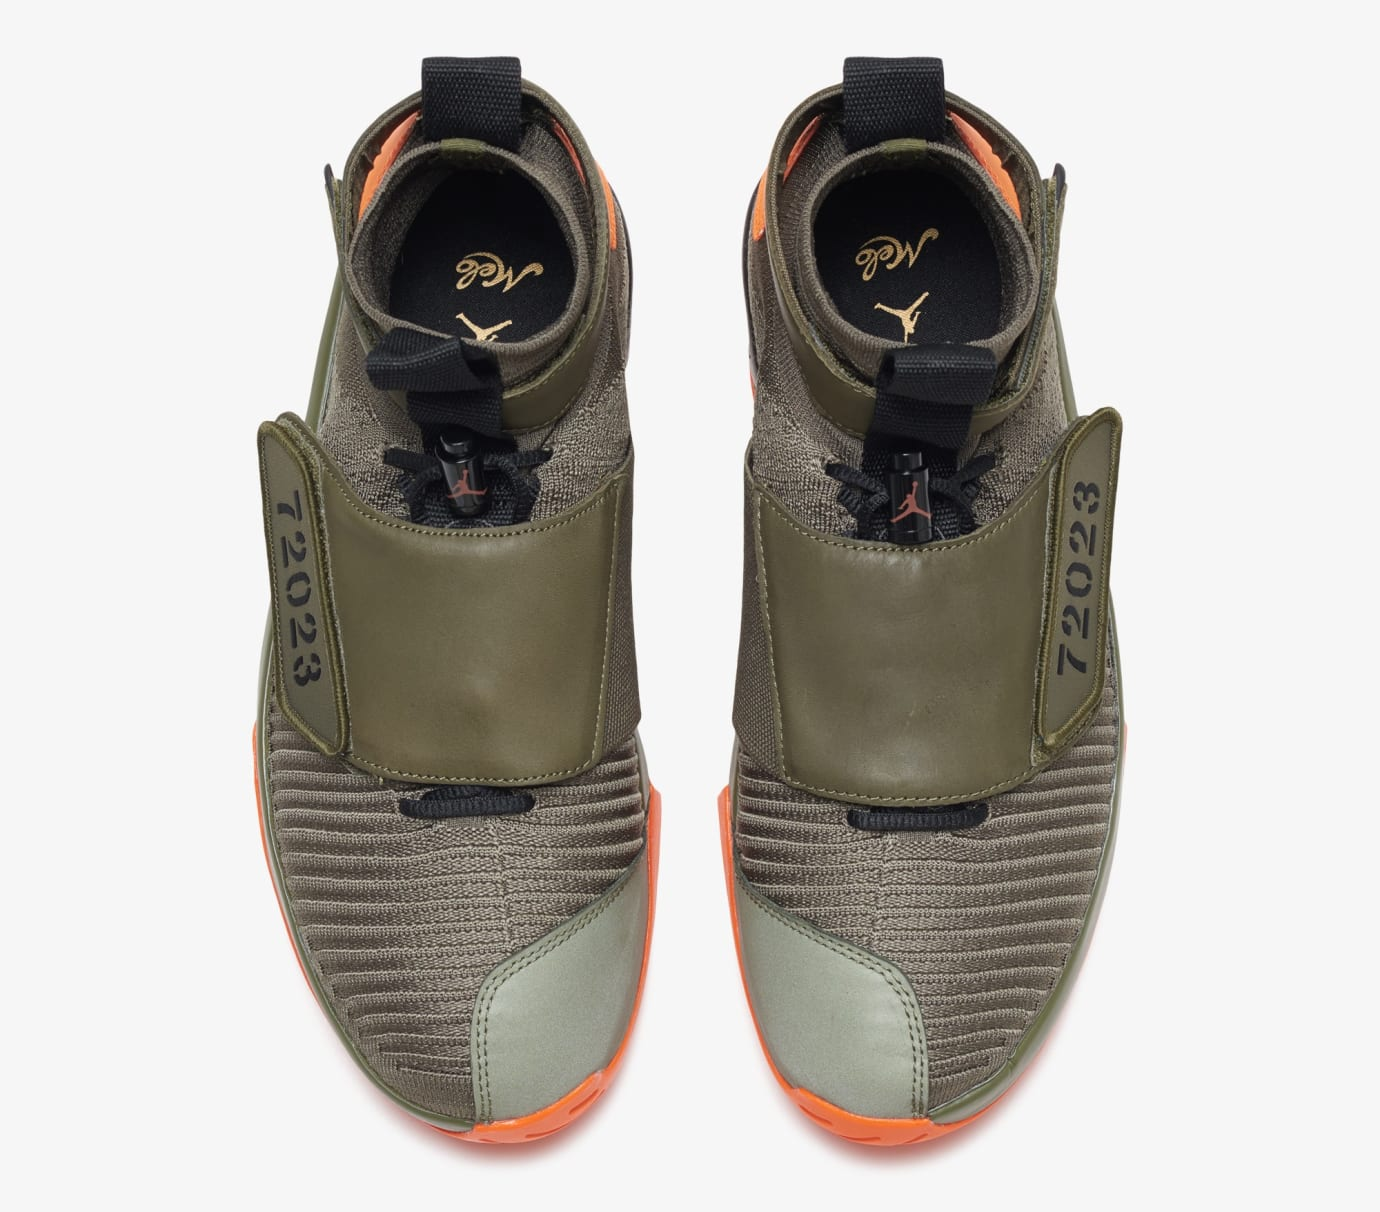 separation shoes eab24 895f9 Image via US11 · Air Jordan 20 Flyknit  Melo Olive Orange  (Top)